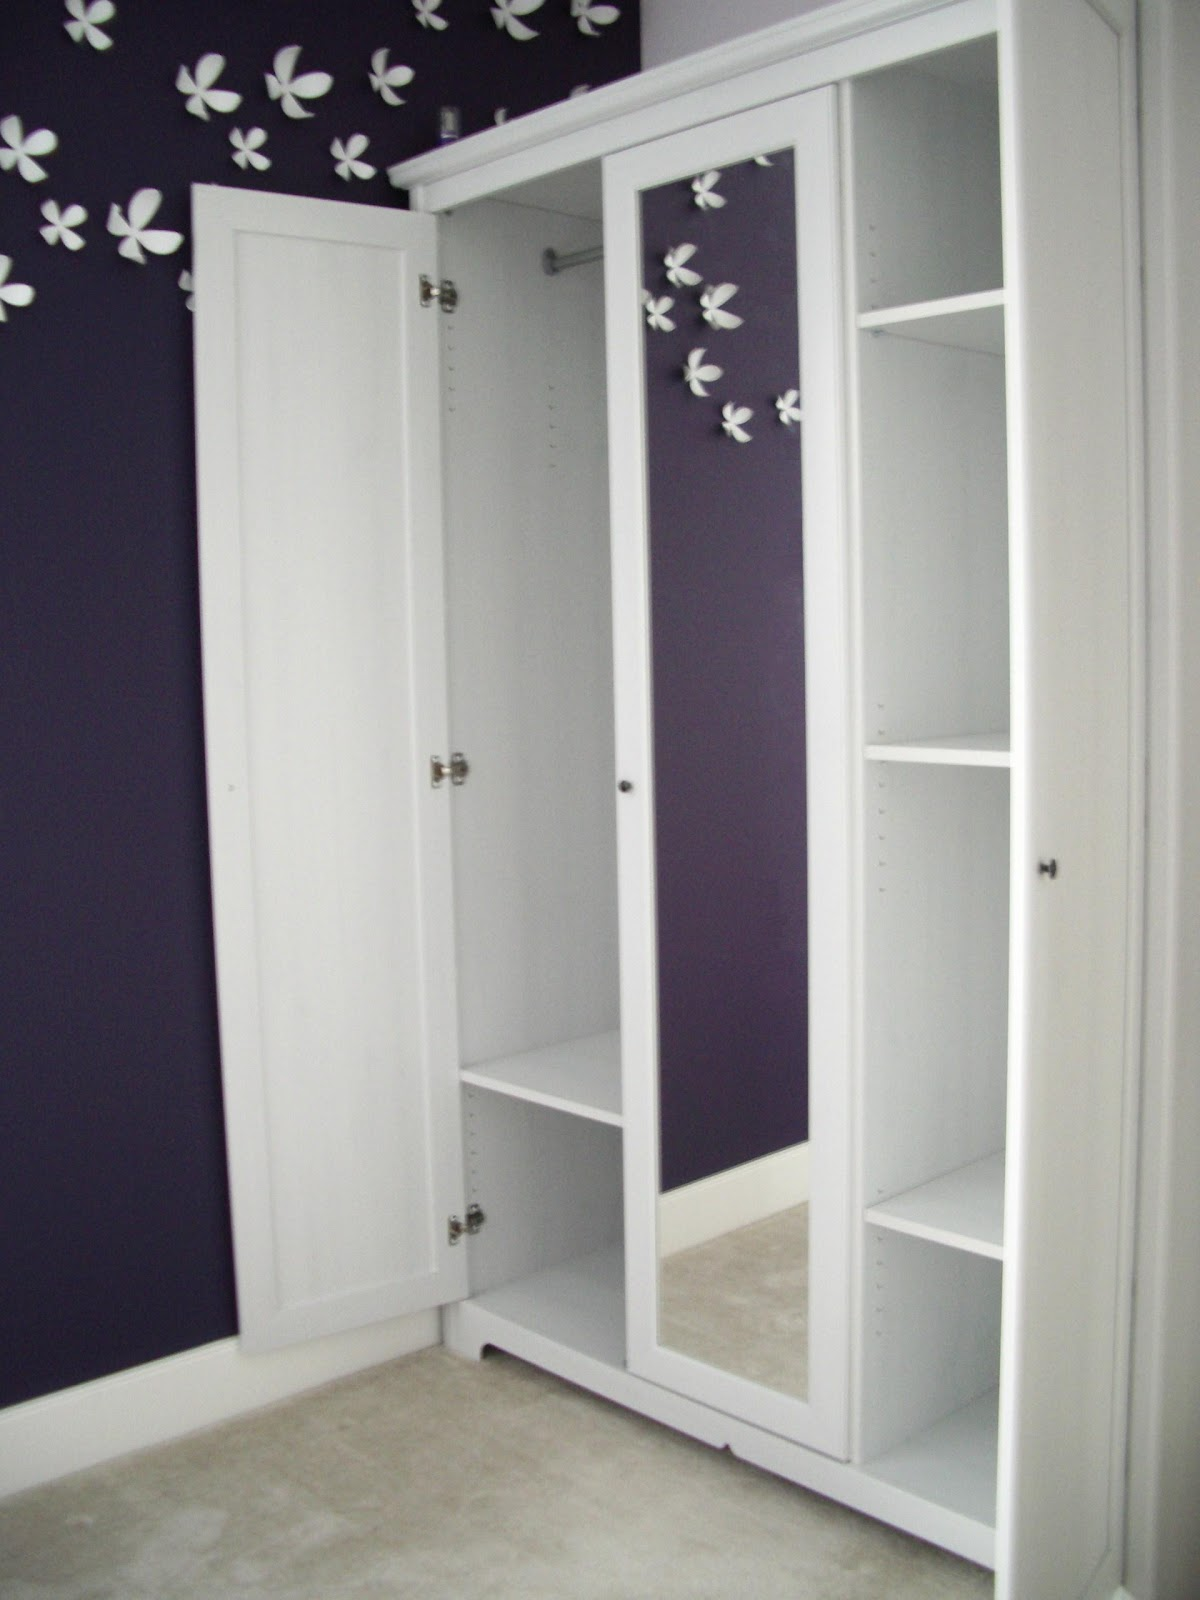 Ikea Schuhschrank Hemnes Gebraucht ~ Welcome — New Post has been published on Kalkunta com